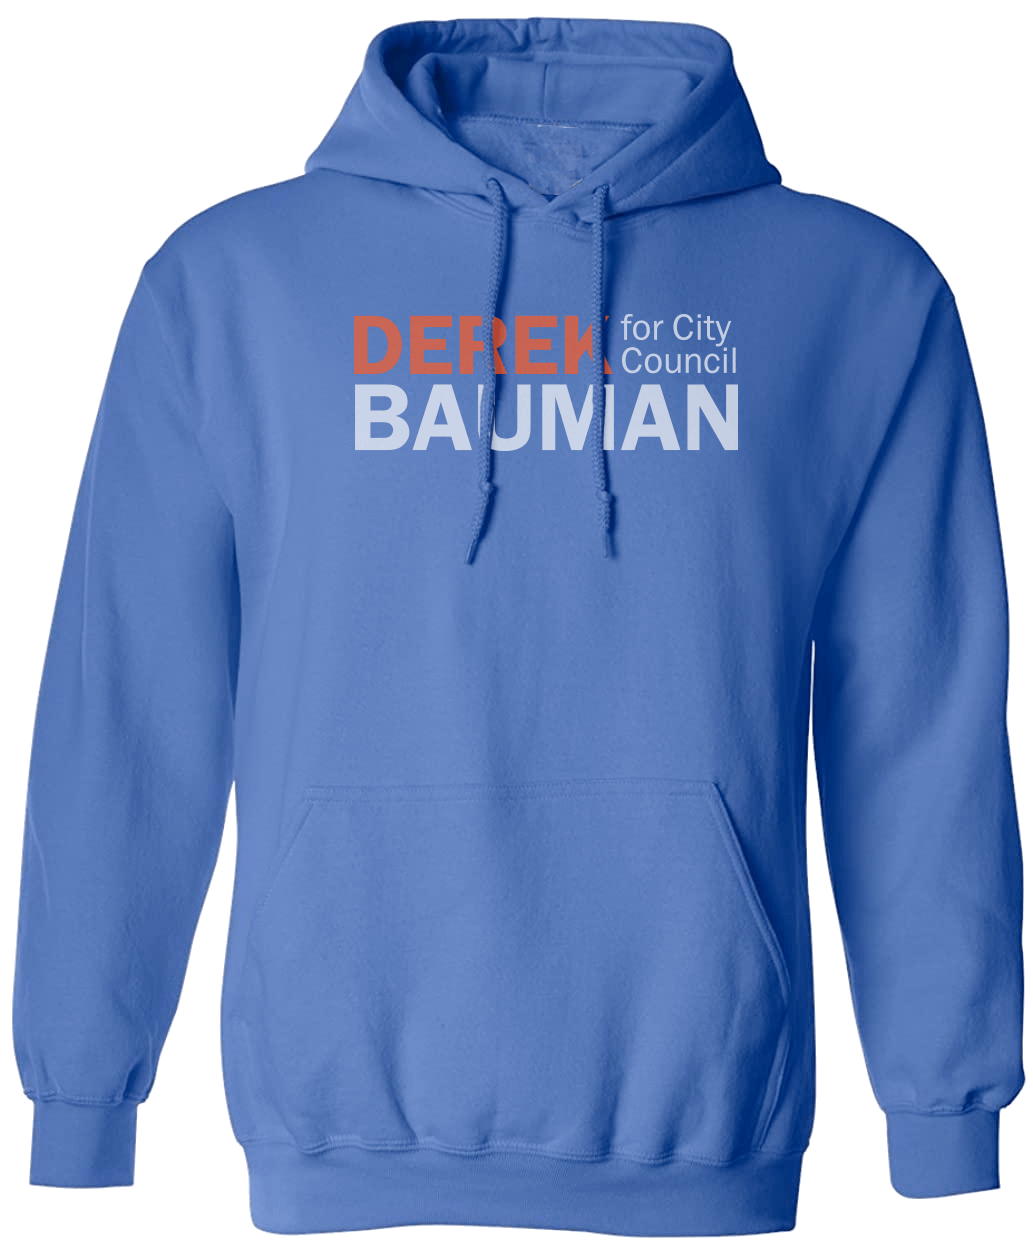 Derek Bauman For City Council Blue Hoodie Shirts unionstrongshirts